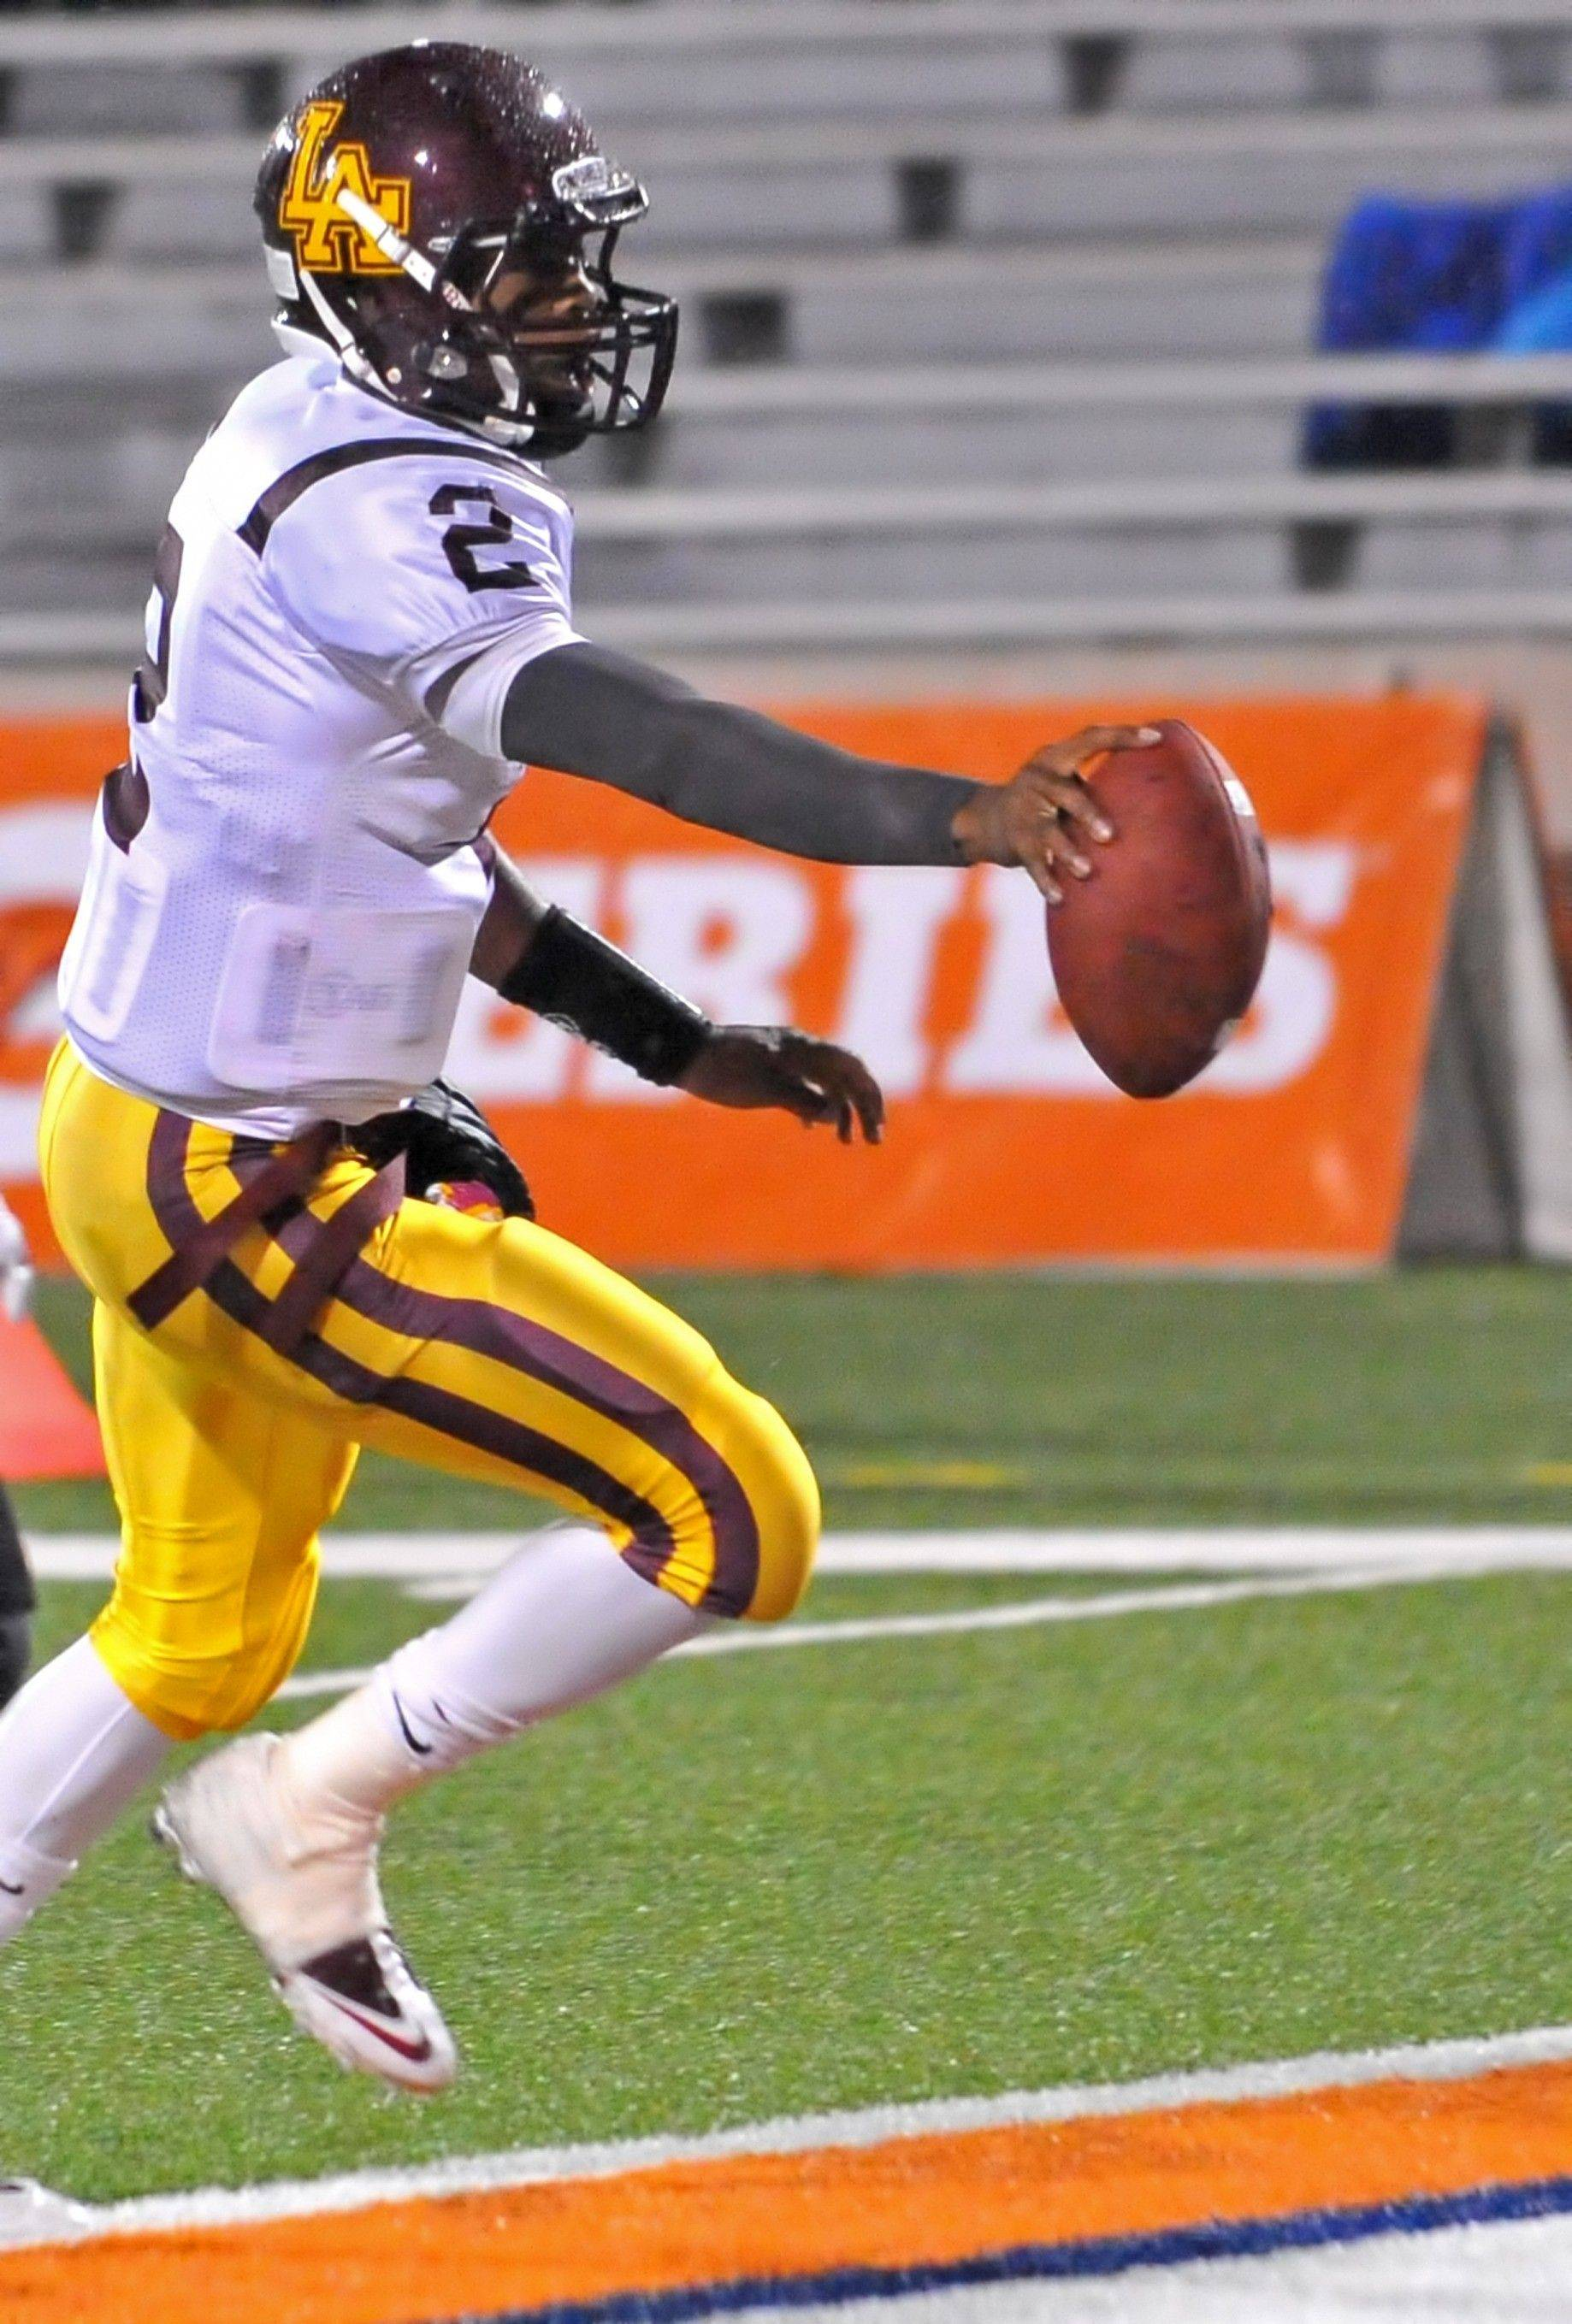 Loyola Academy's Malcom Weaver reaches the end zone against Bolingbrook in the Class 8A championship game Saturday.